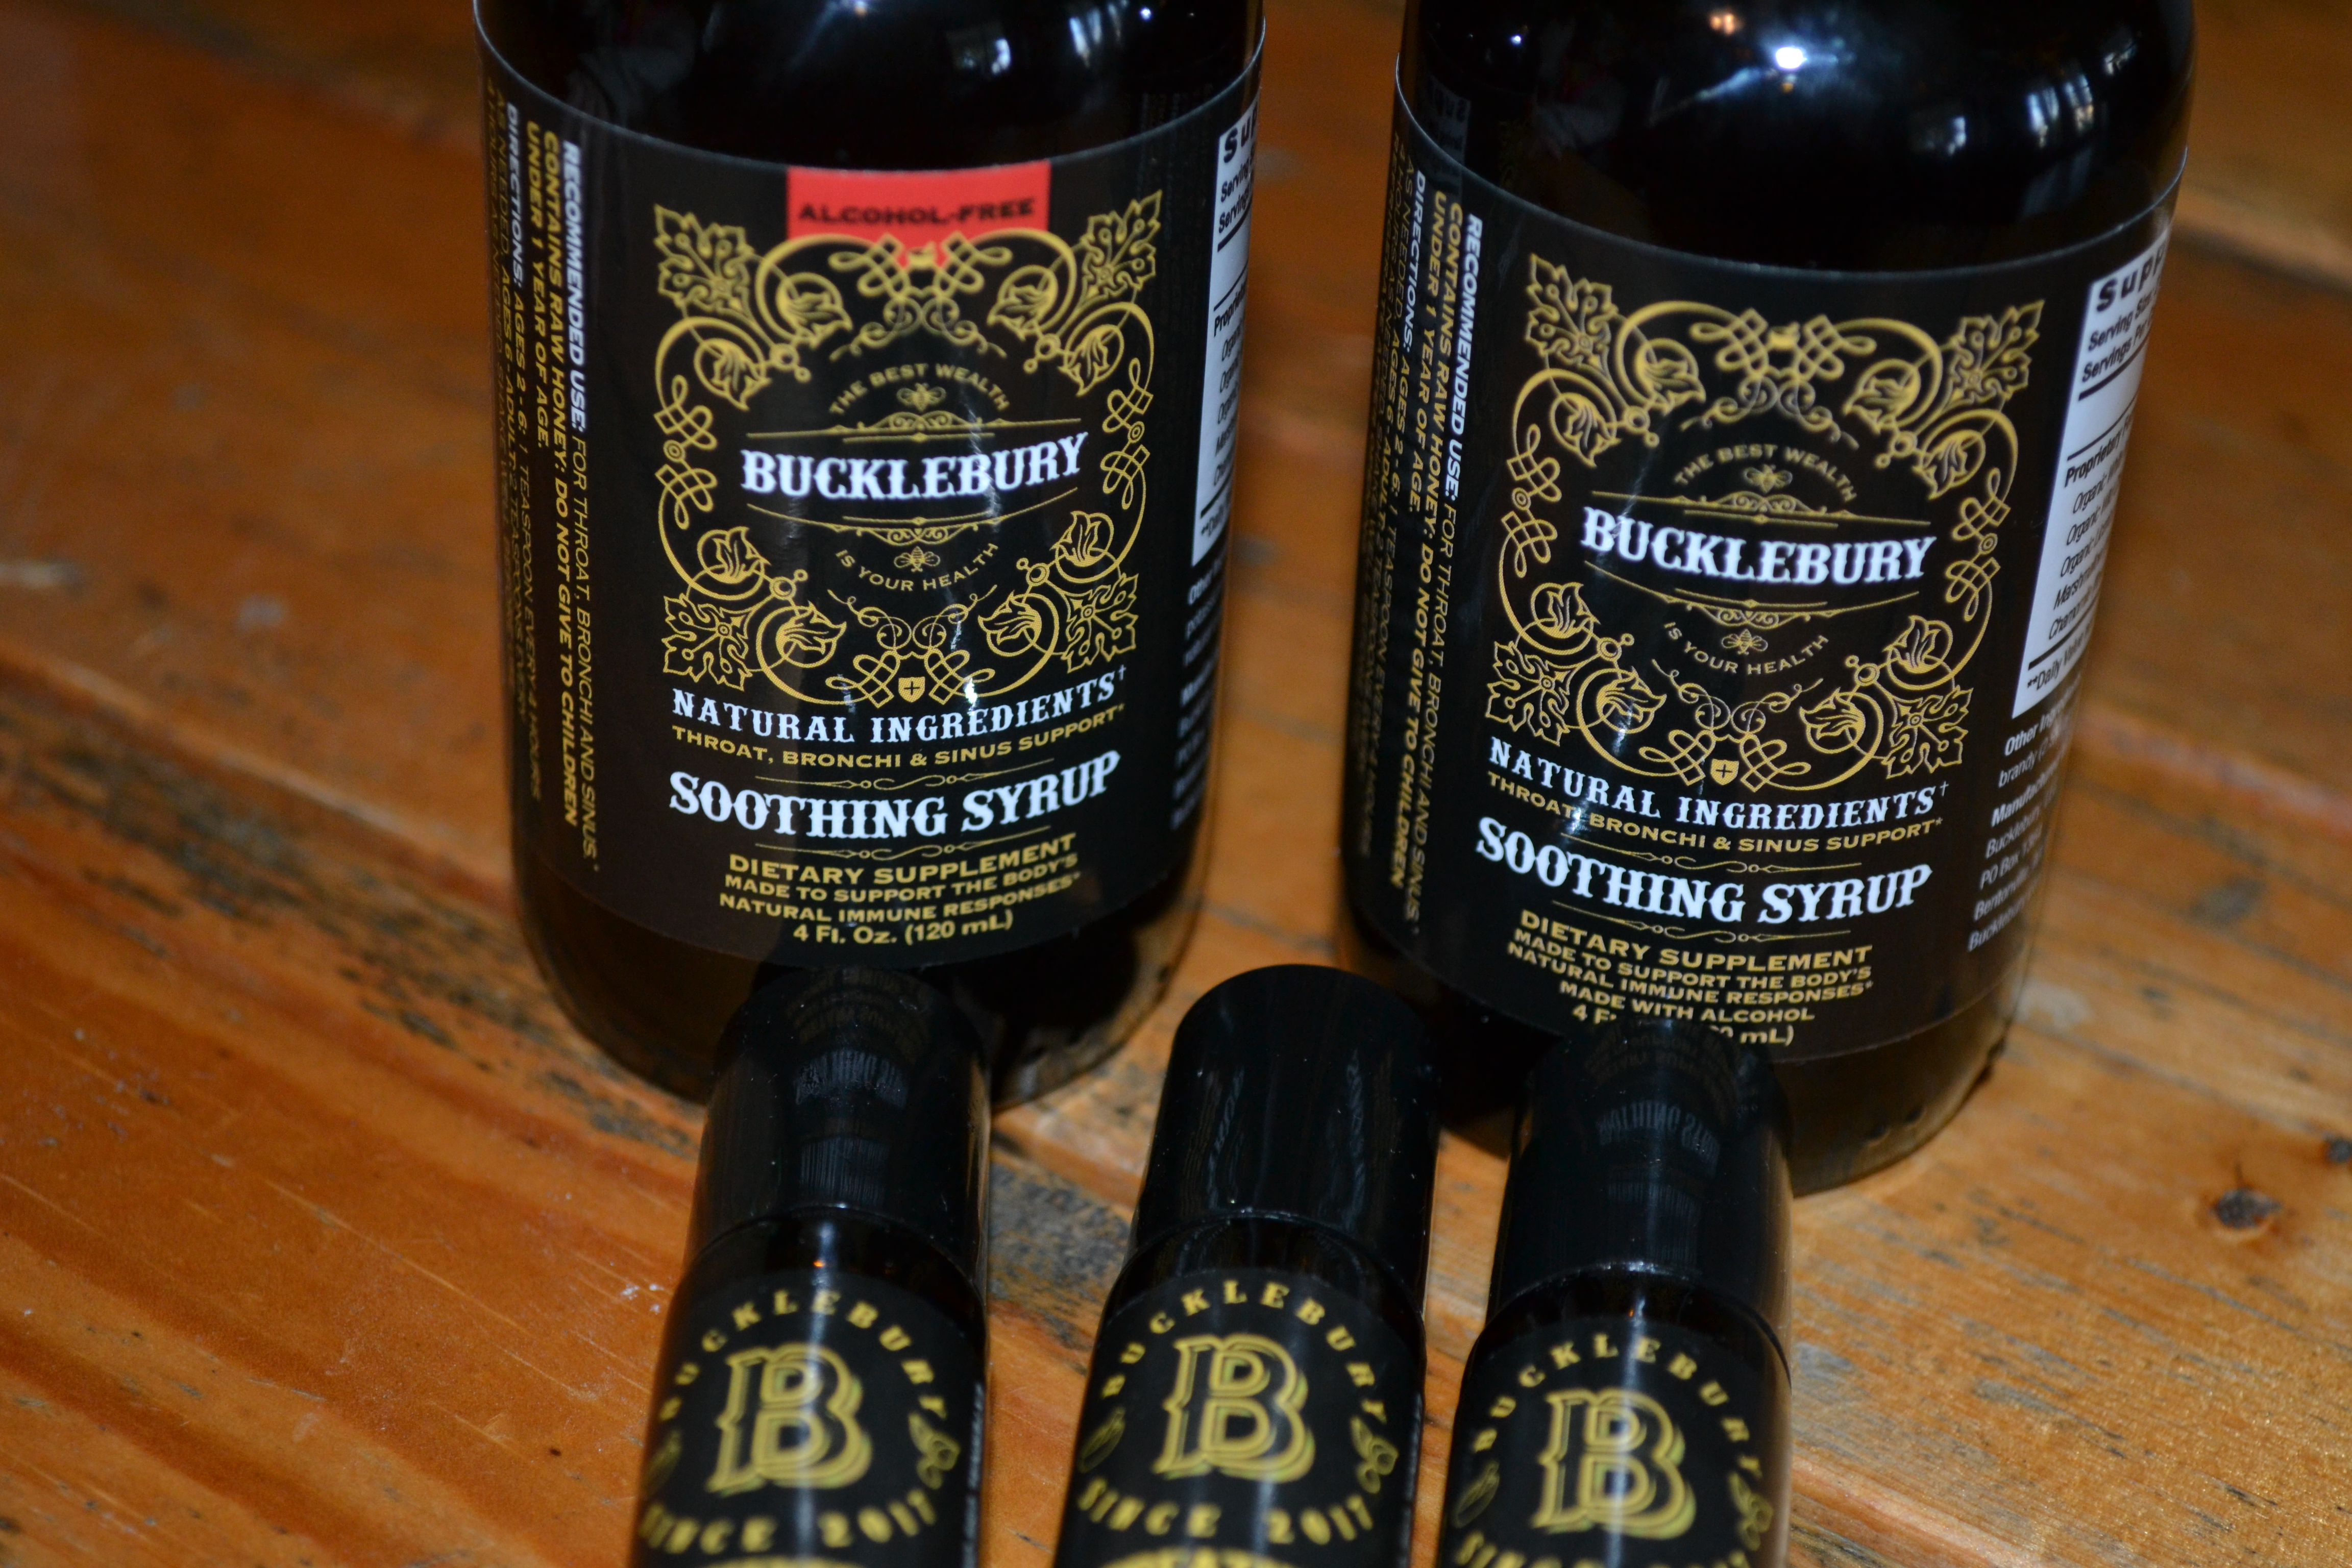 Fight your sickness with Bucklebury Soothing Syrup and a % of proceeds goes to fight human trafficking!